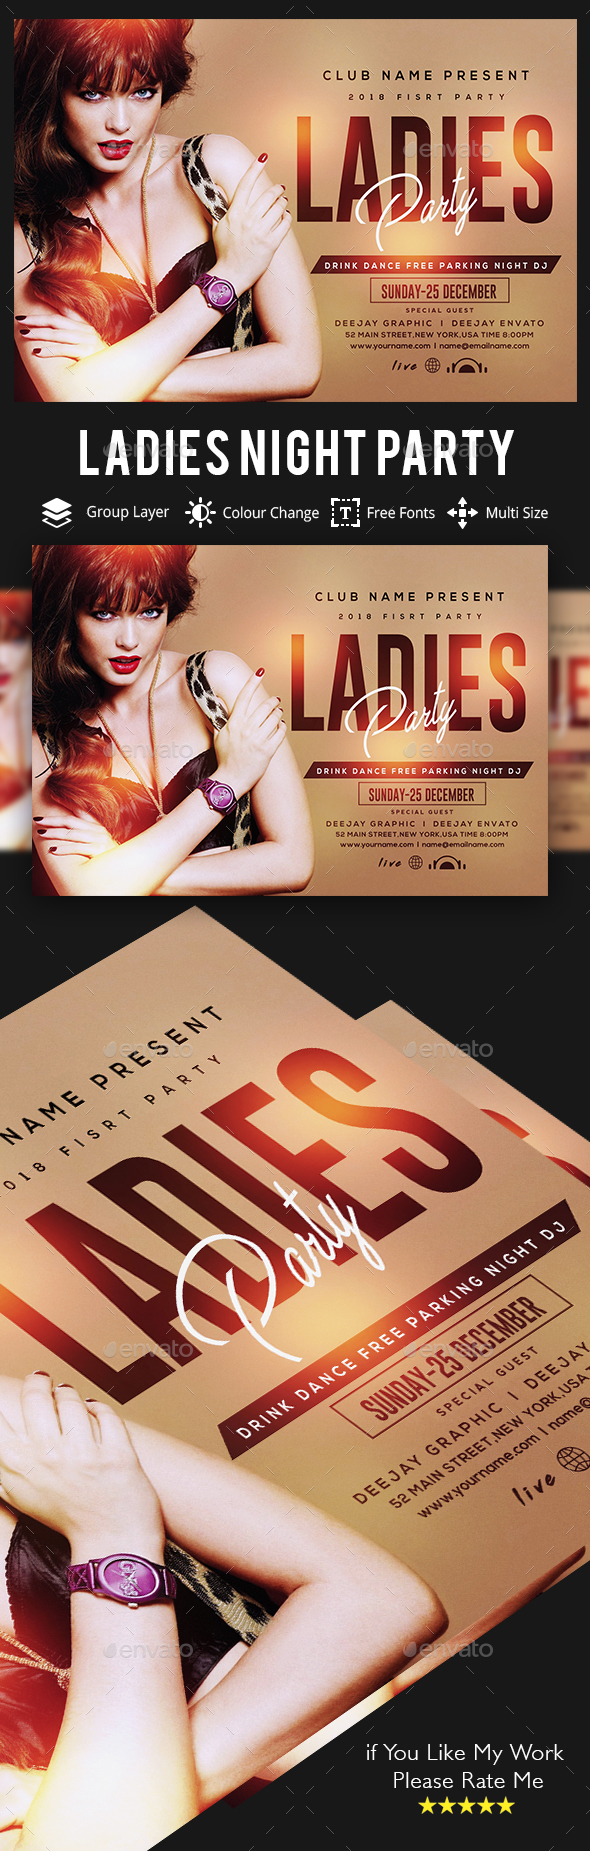 Ladies Night Party Flyer - Clubs & Parties Events